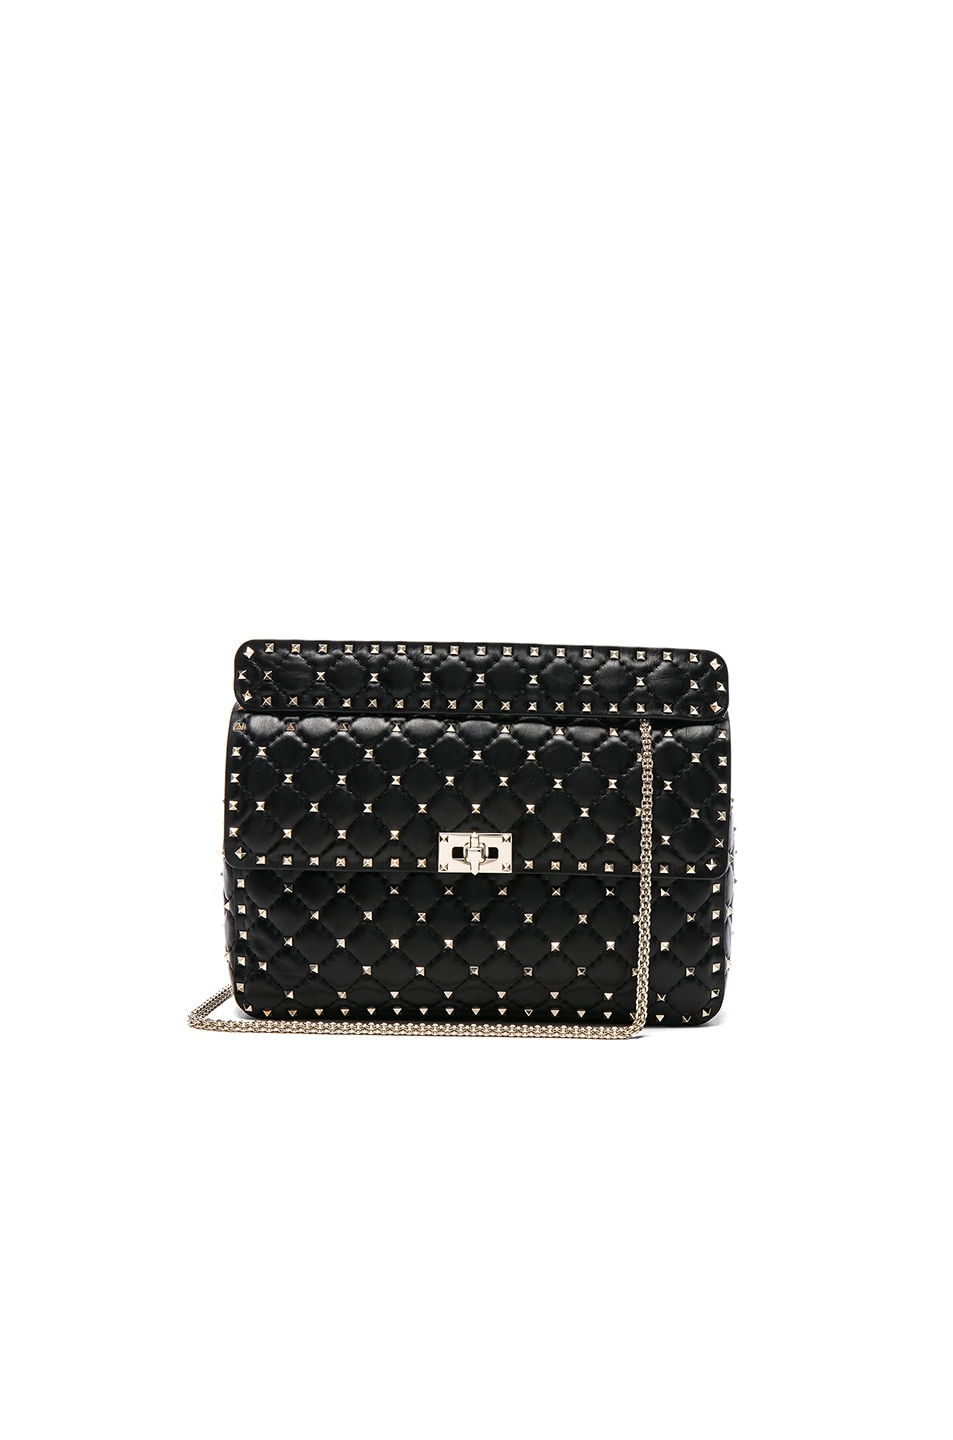 Image 1 of Valentino Large Quilted Rockstud Spike Shoulder Bag in Black